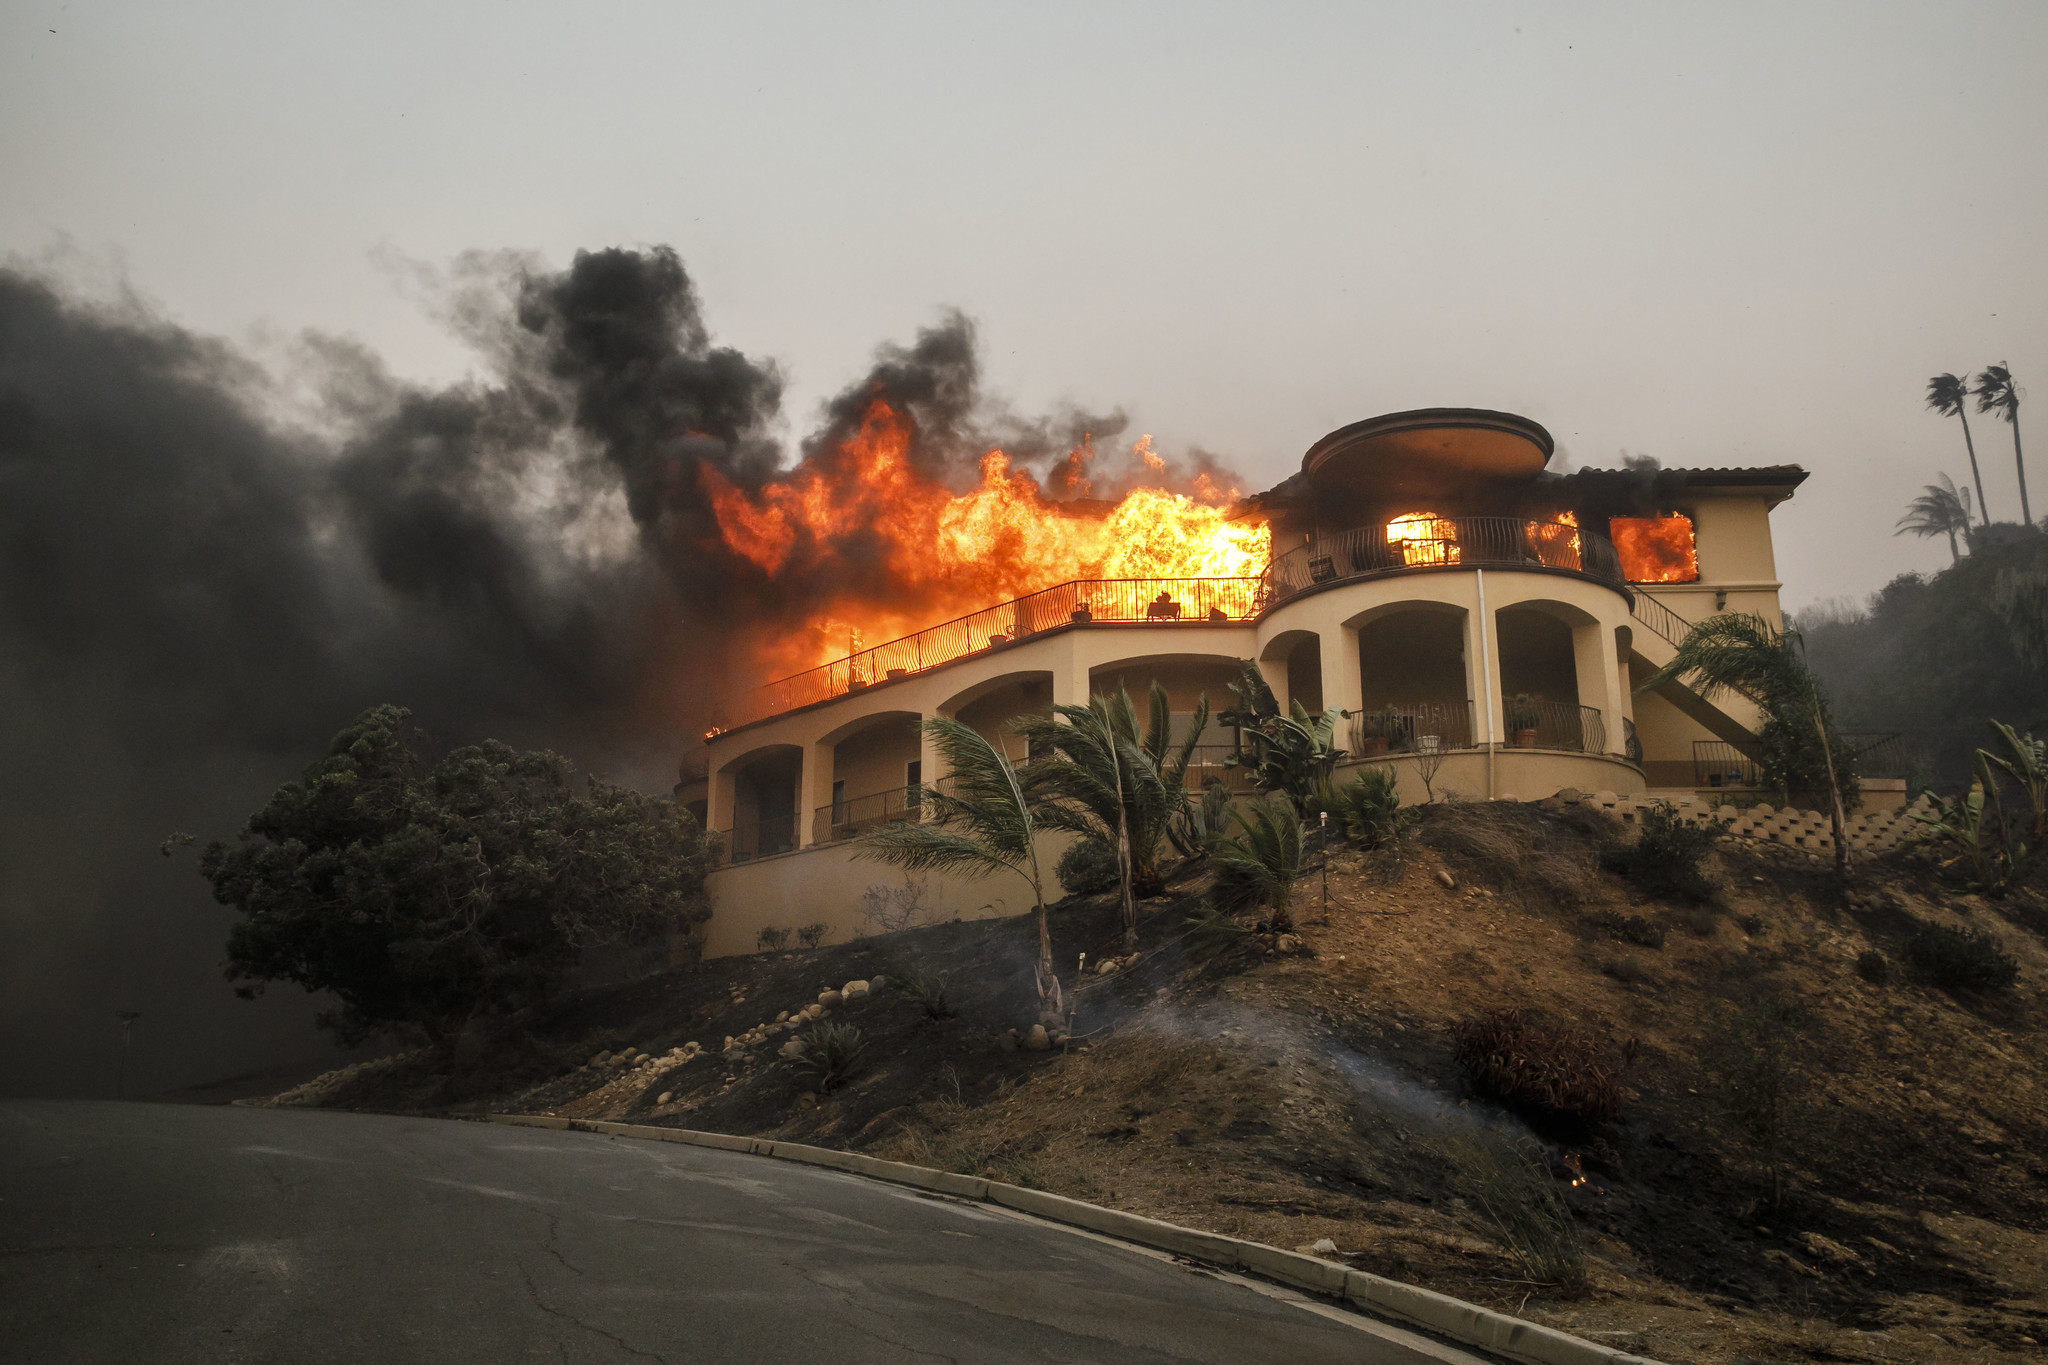 A home is engulfed in flames as the Thomas fire continues to burn in Ventura County. (Marcus Yam / Los Angeles Times)